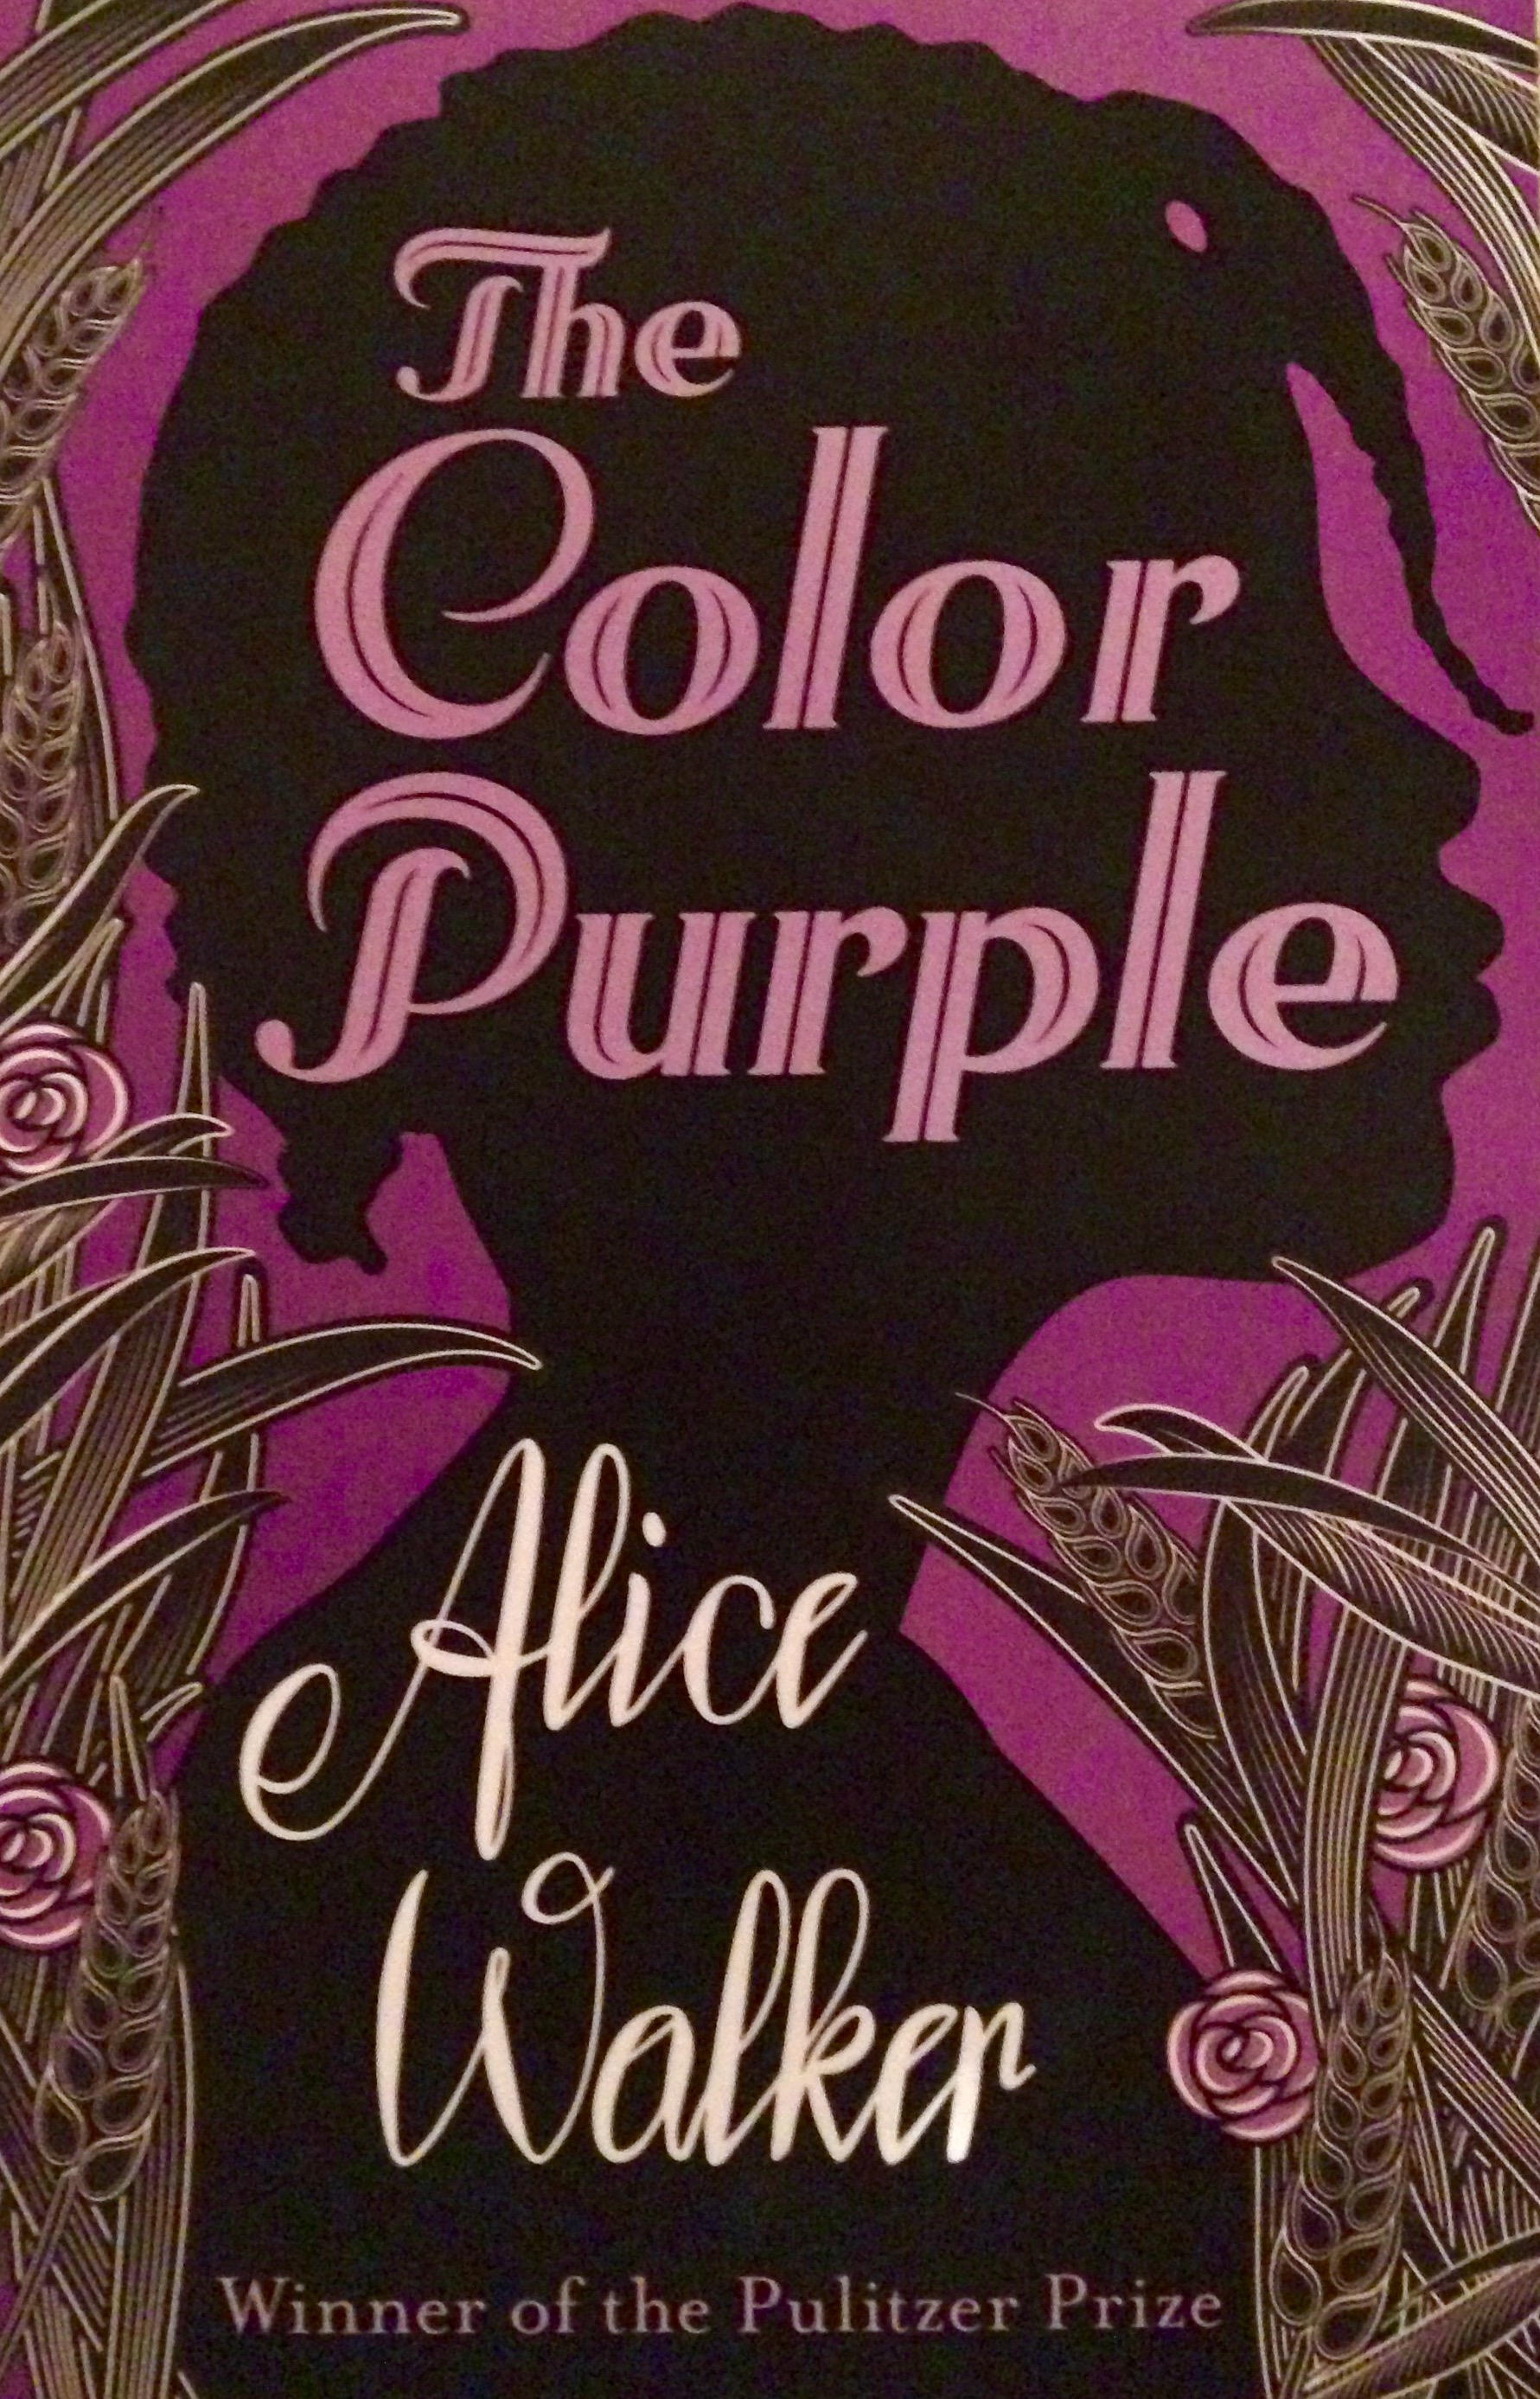 color purple book review essay Essay byron hooper 11/18/96 the color purple film review the color purple the movie the color purple, directed by steven speilberg, was, in.